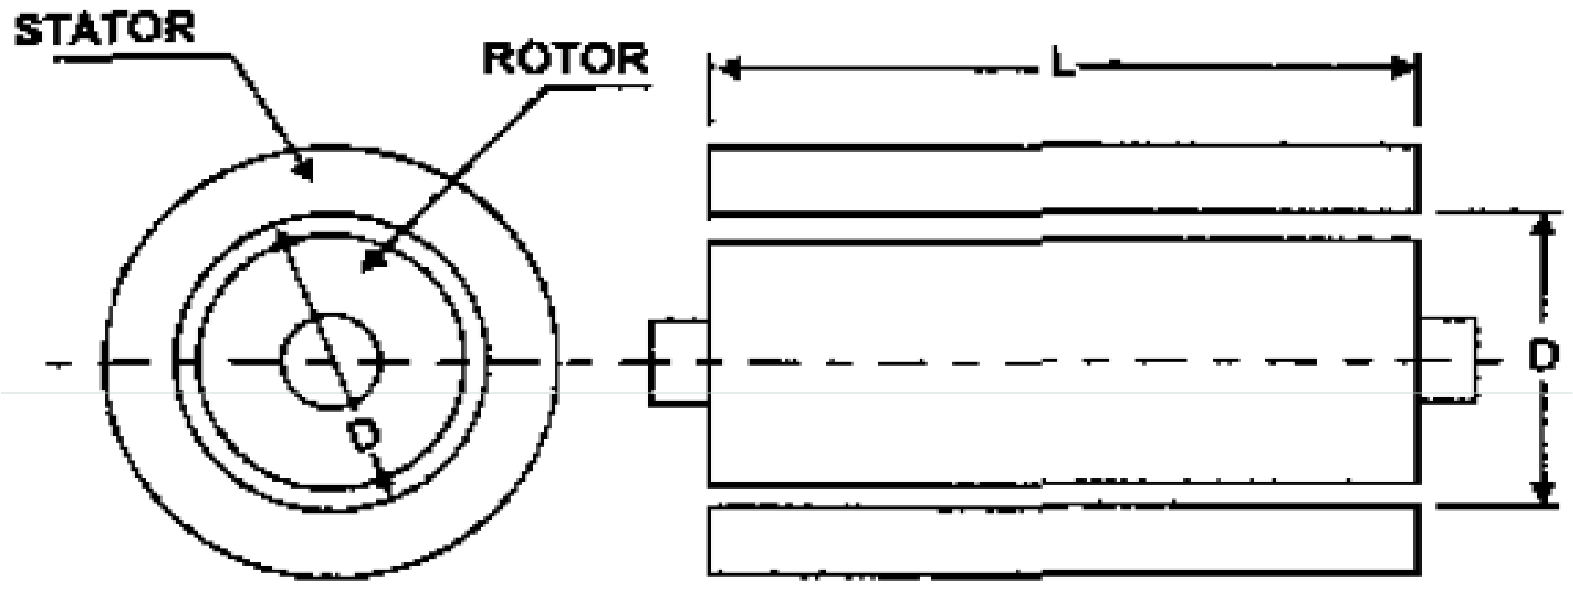 139qmb Scooter Wiring Diagram. 139qmb. Wiring Diagram